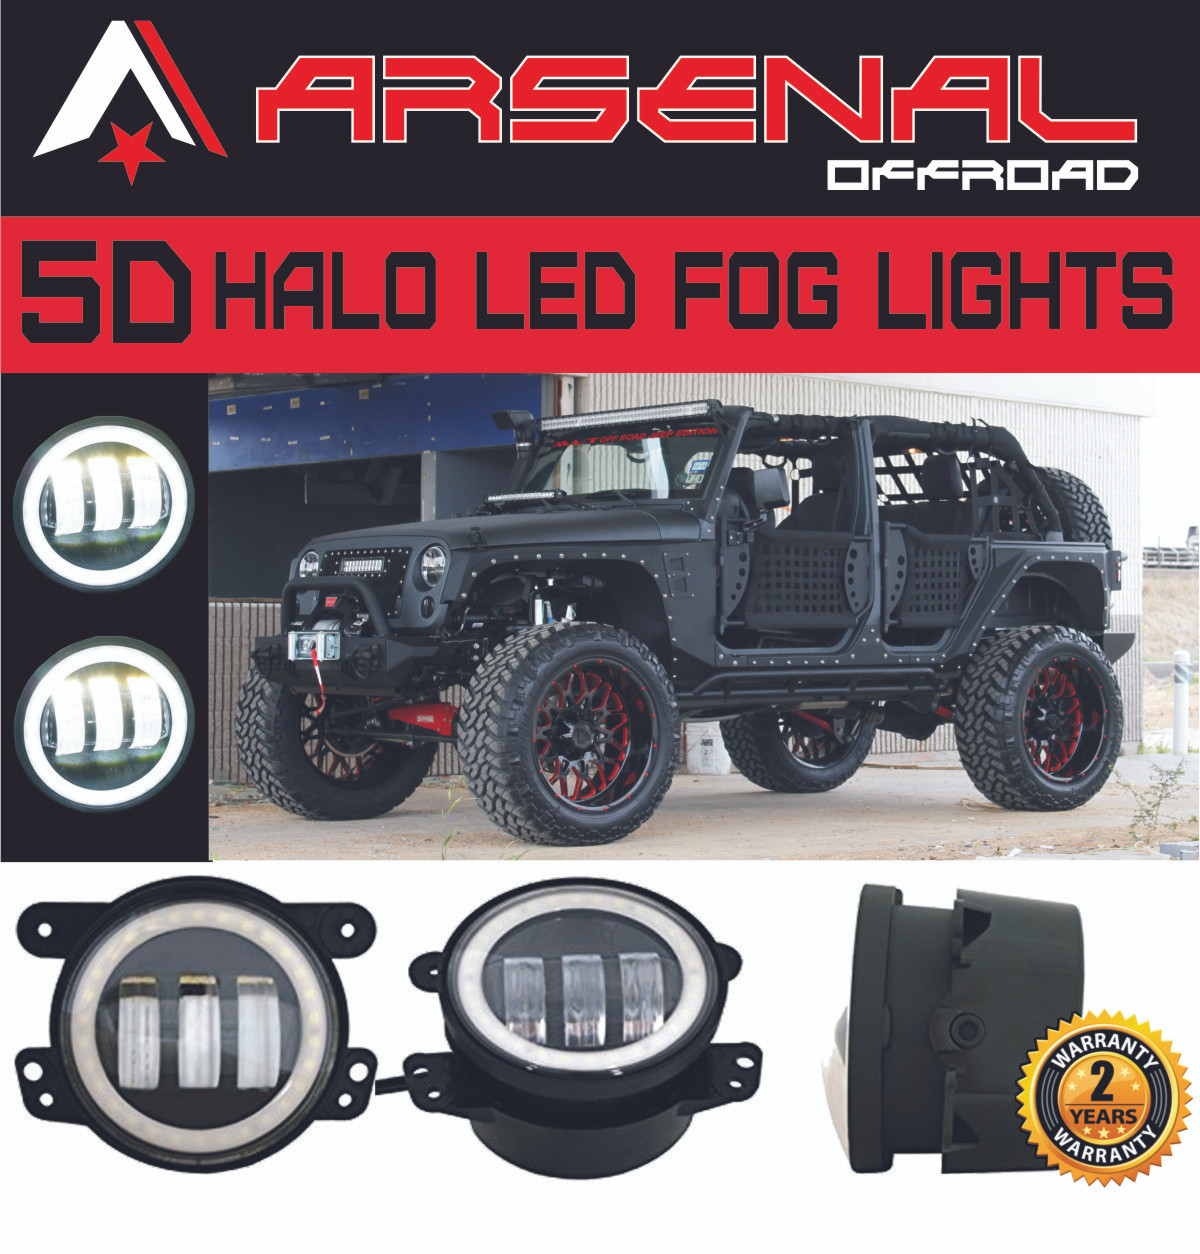 small resolution of  1 4 inch 60w cree led fog lights w white halo ring drl for jeep wrangler 97 15 jk tj lj off road fog lamps